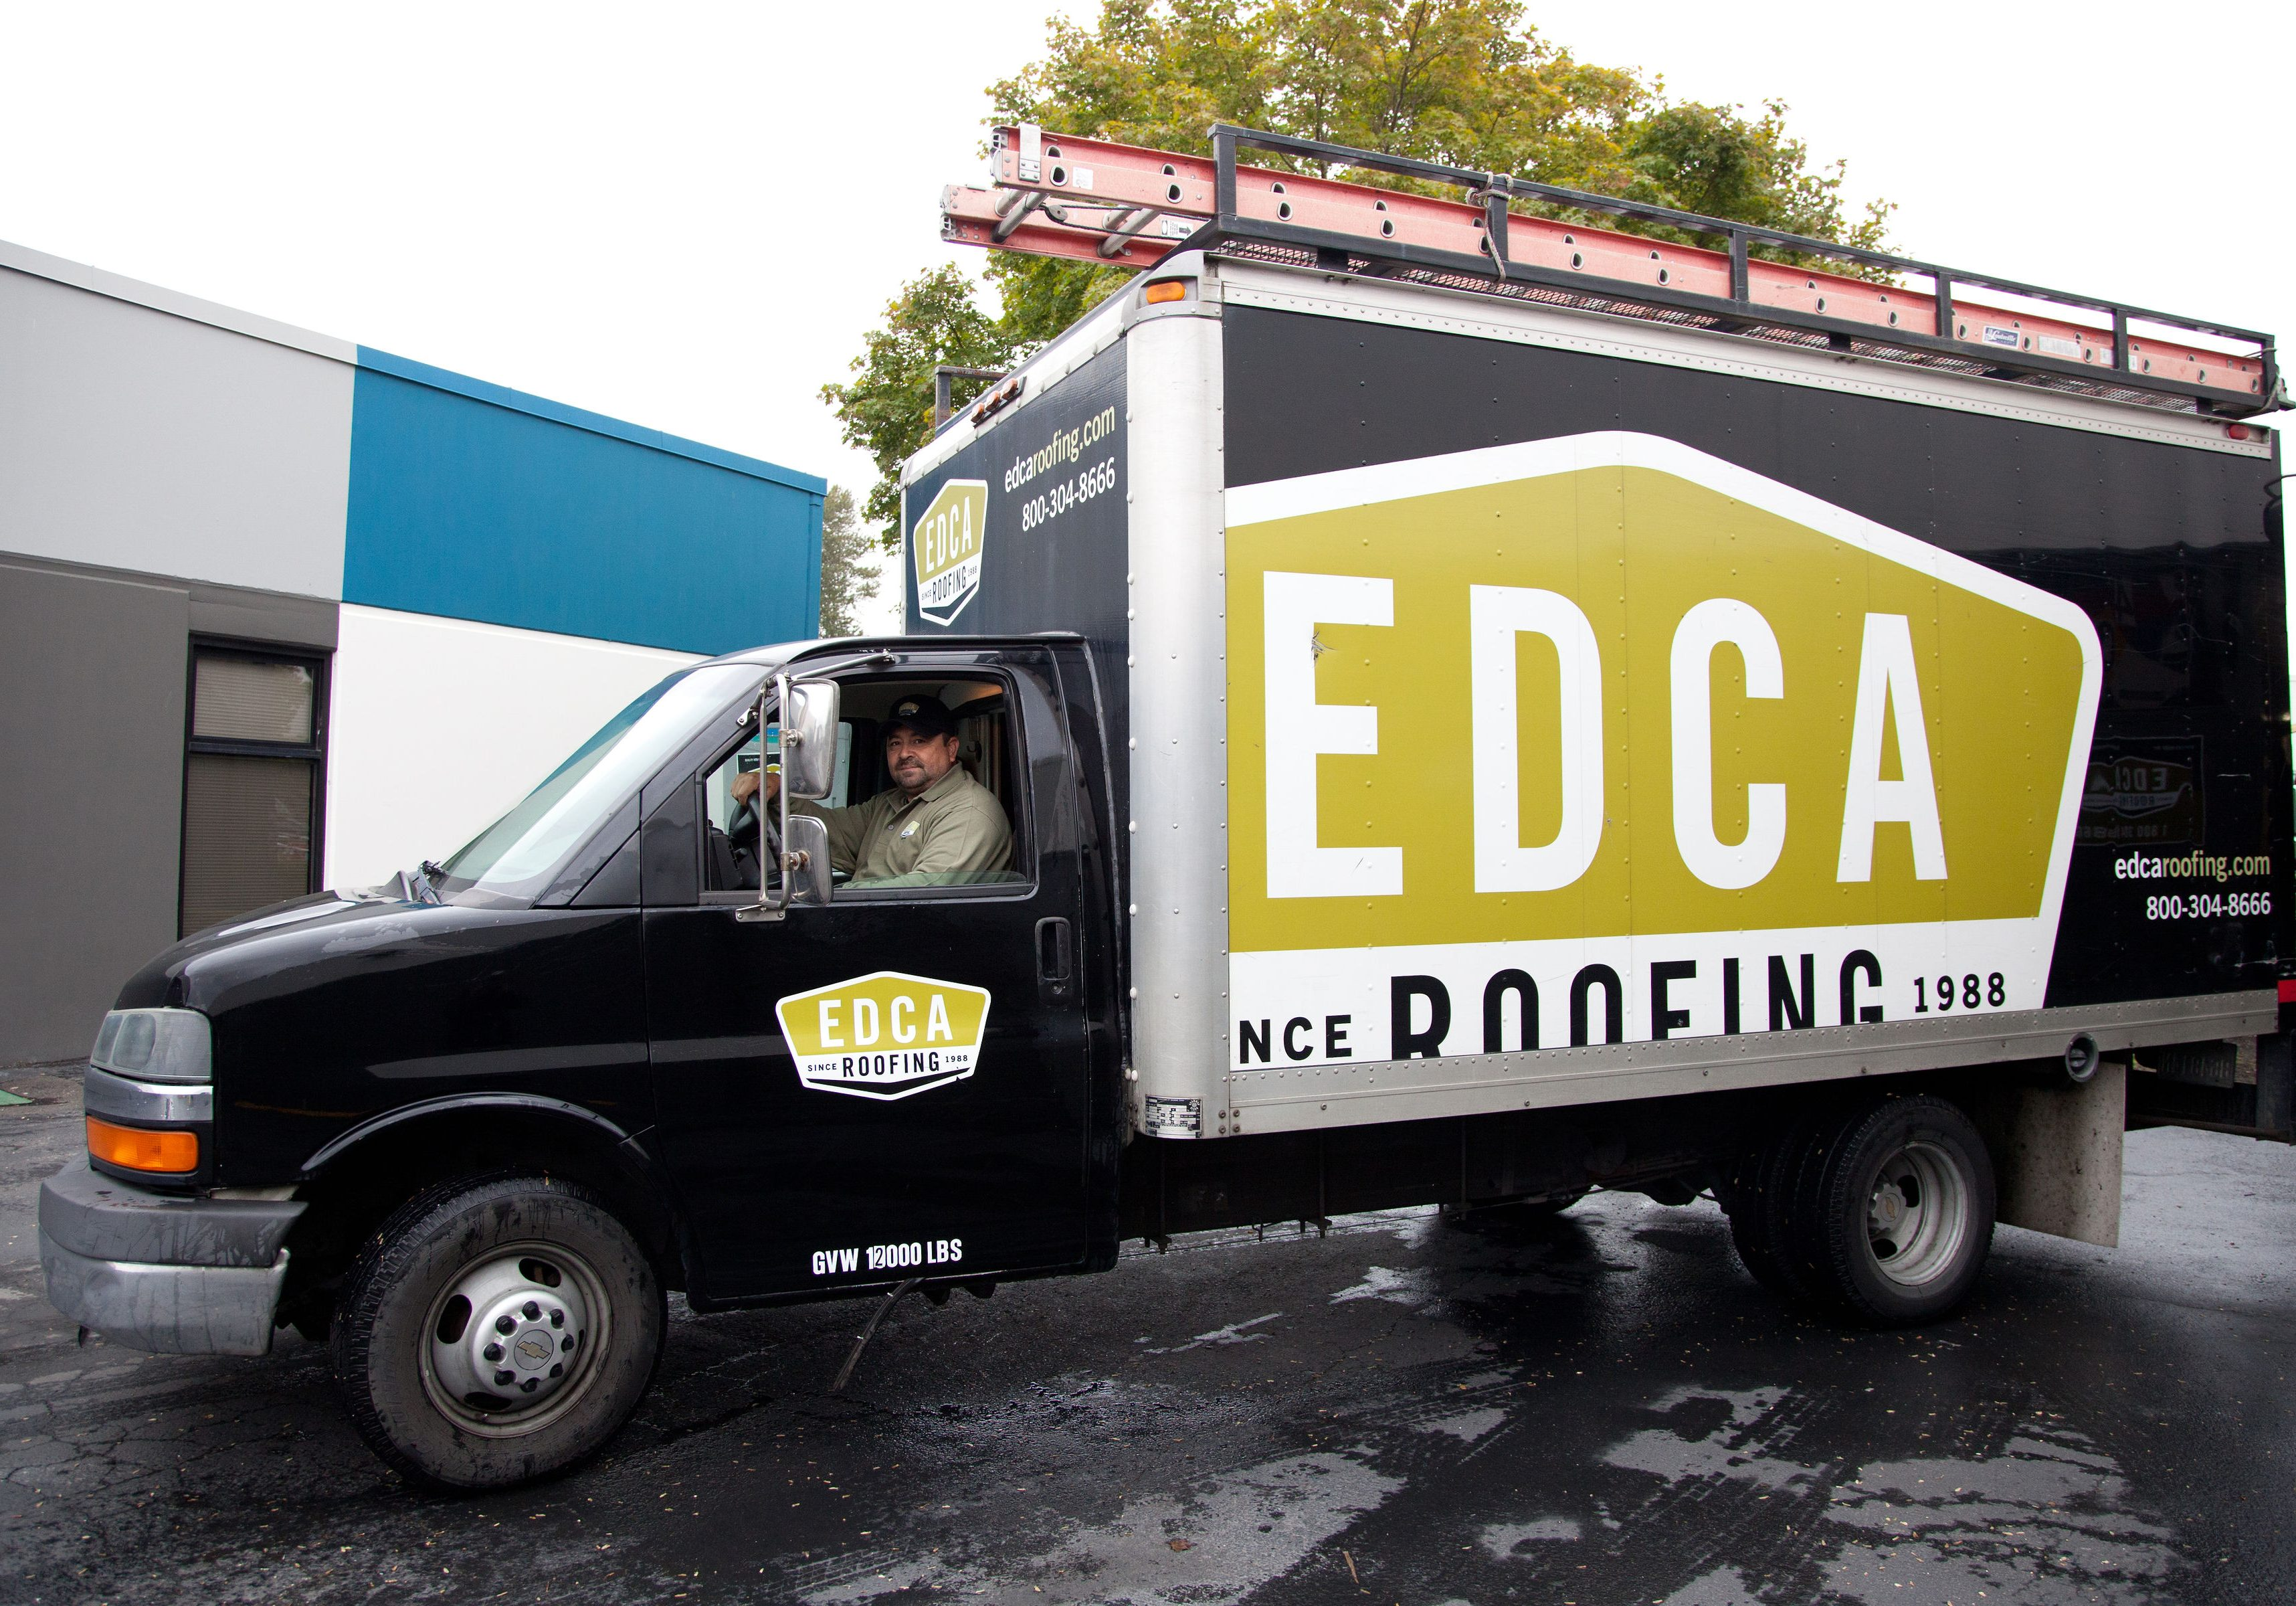 A photo of an EDCA Roofing work vehicle